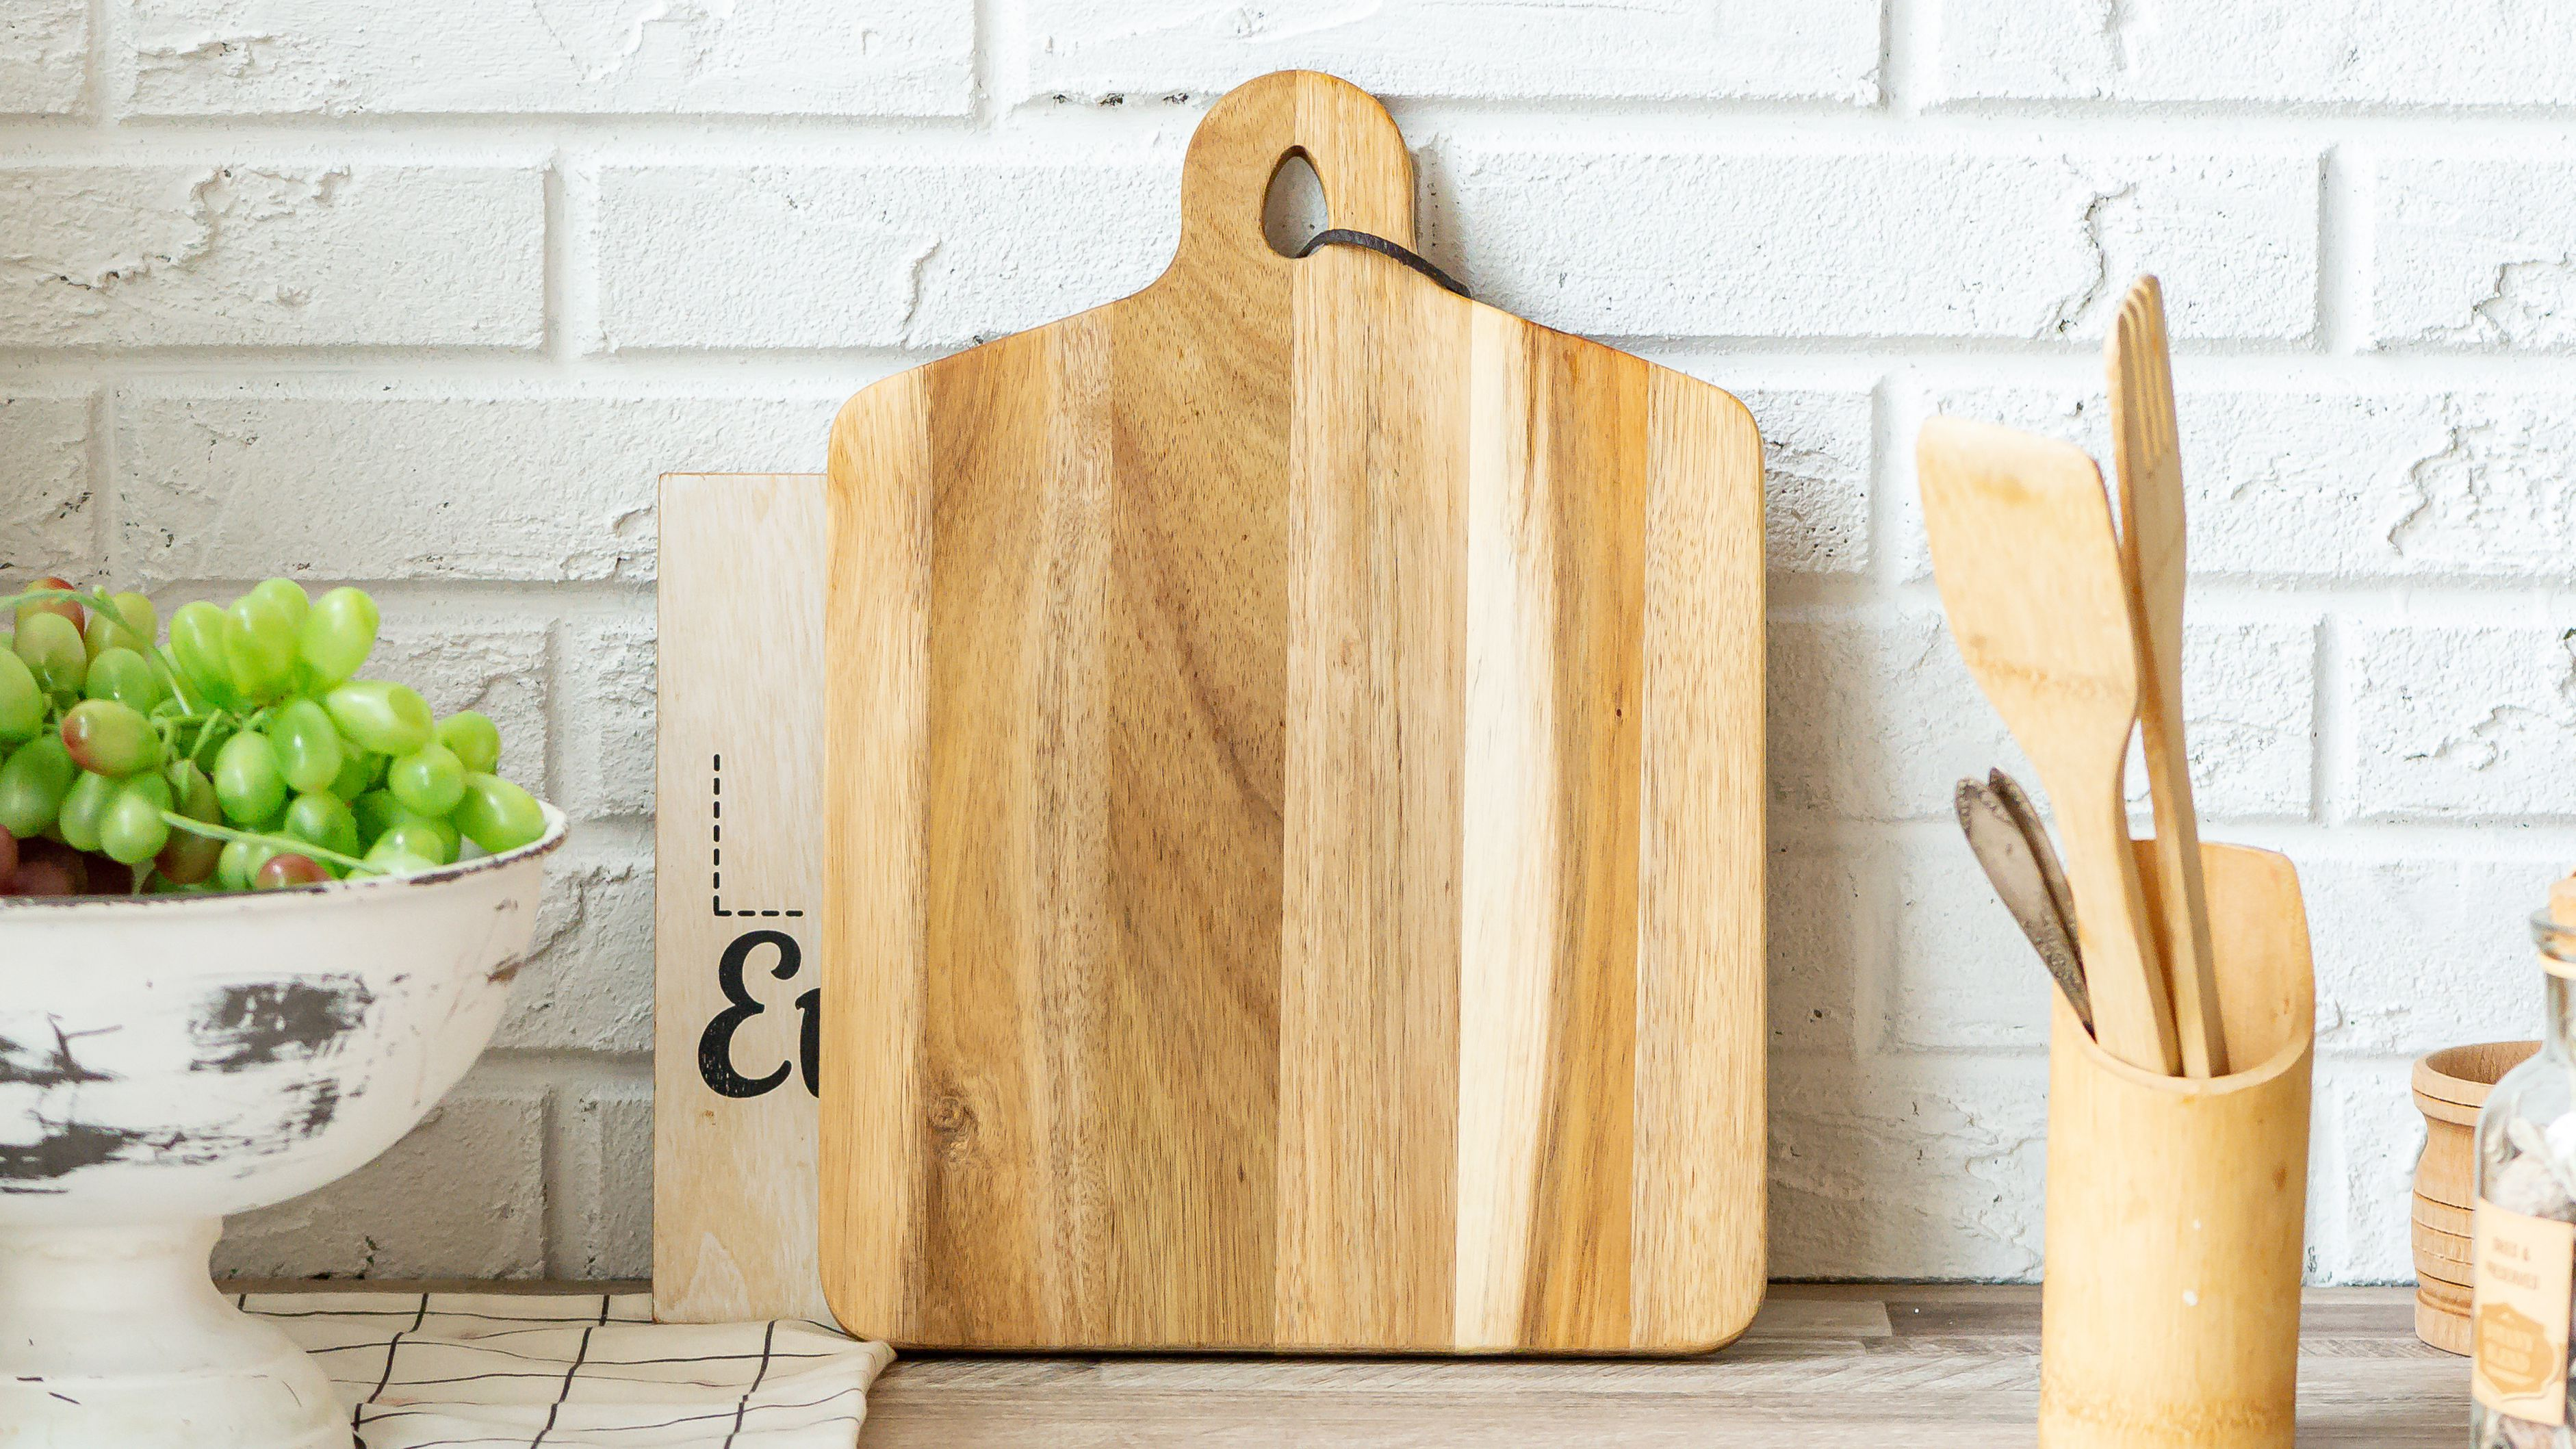 How To Clean A Wooden Cutting Board